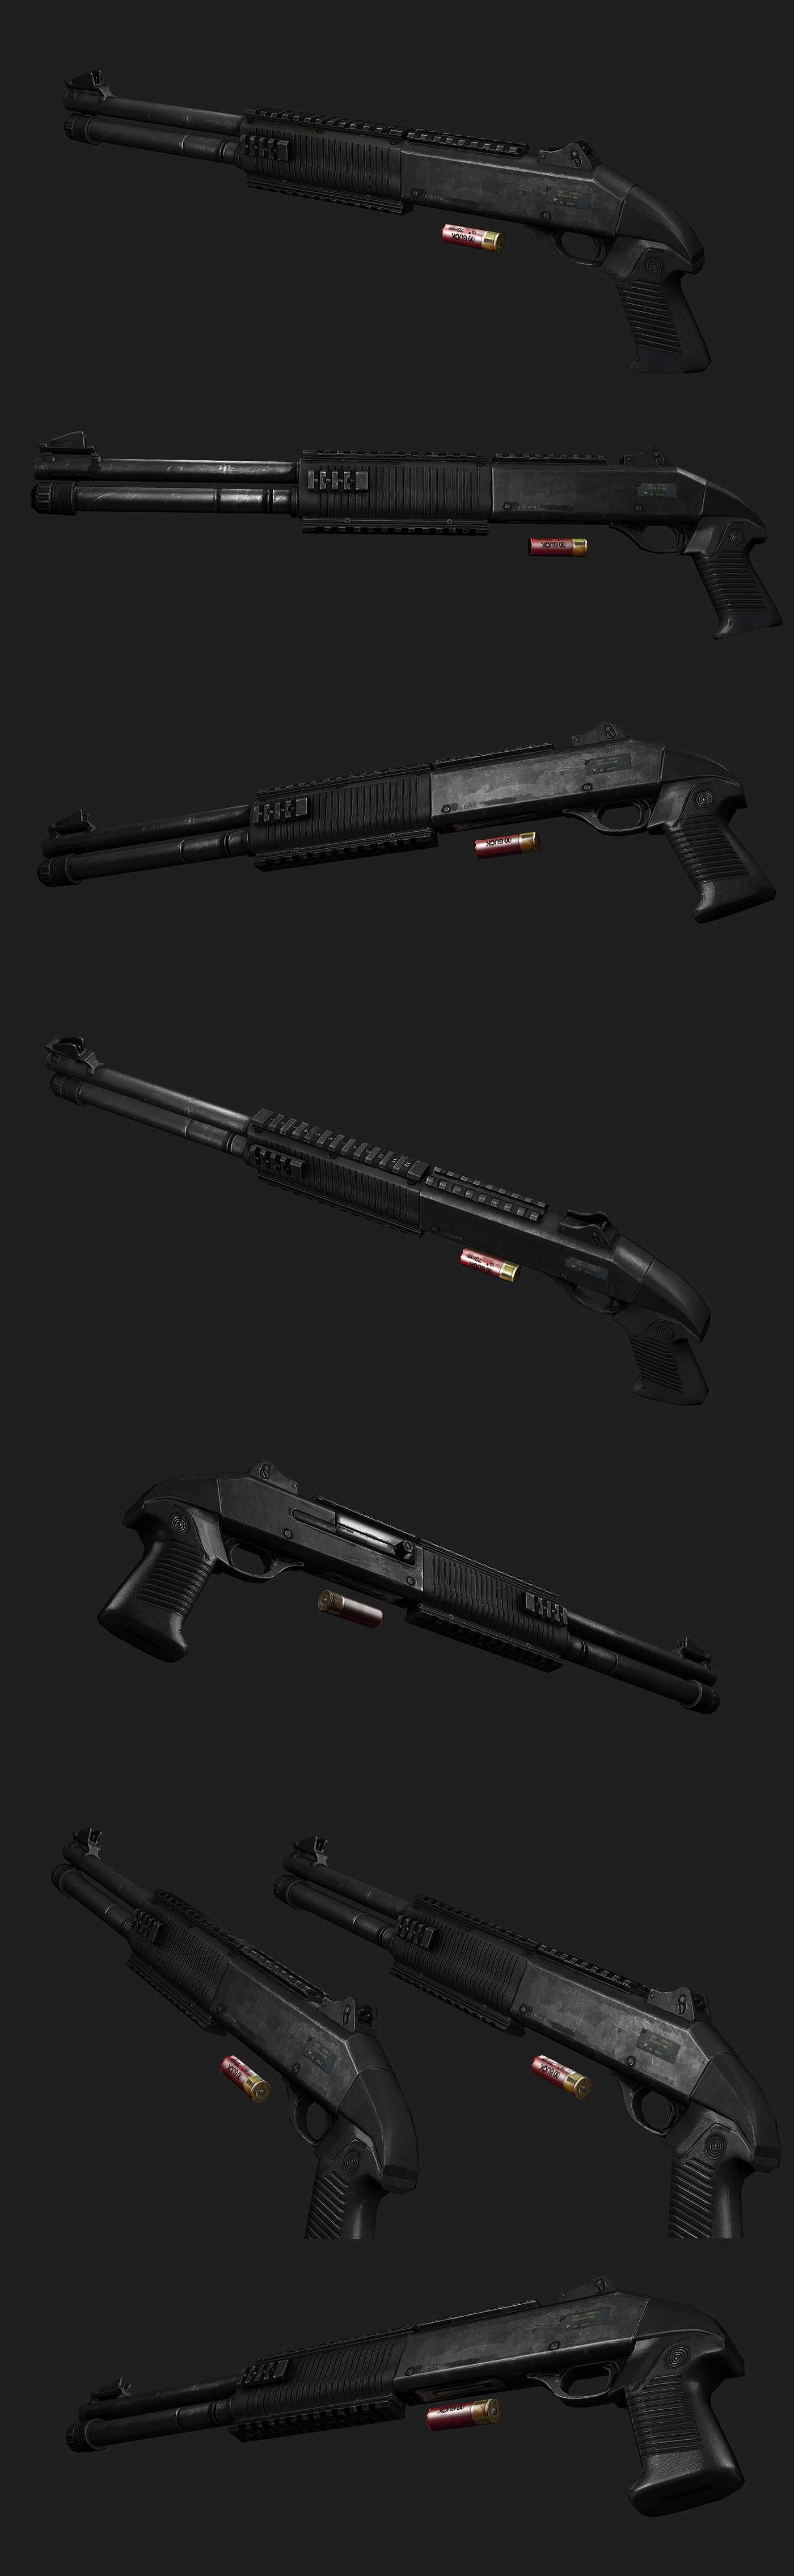 m1014_textured.png